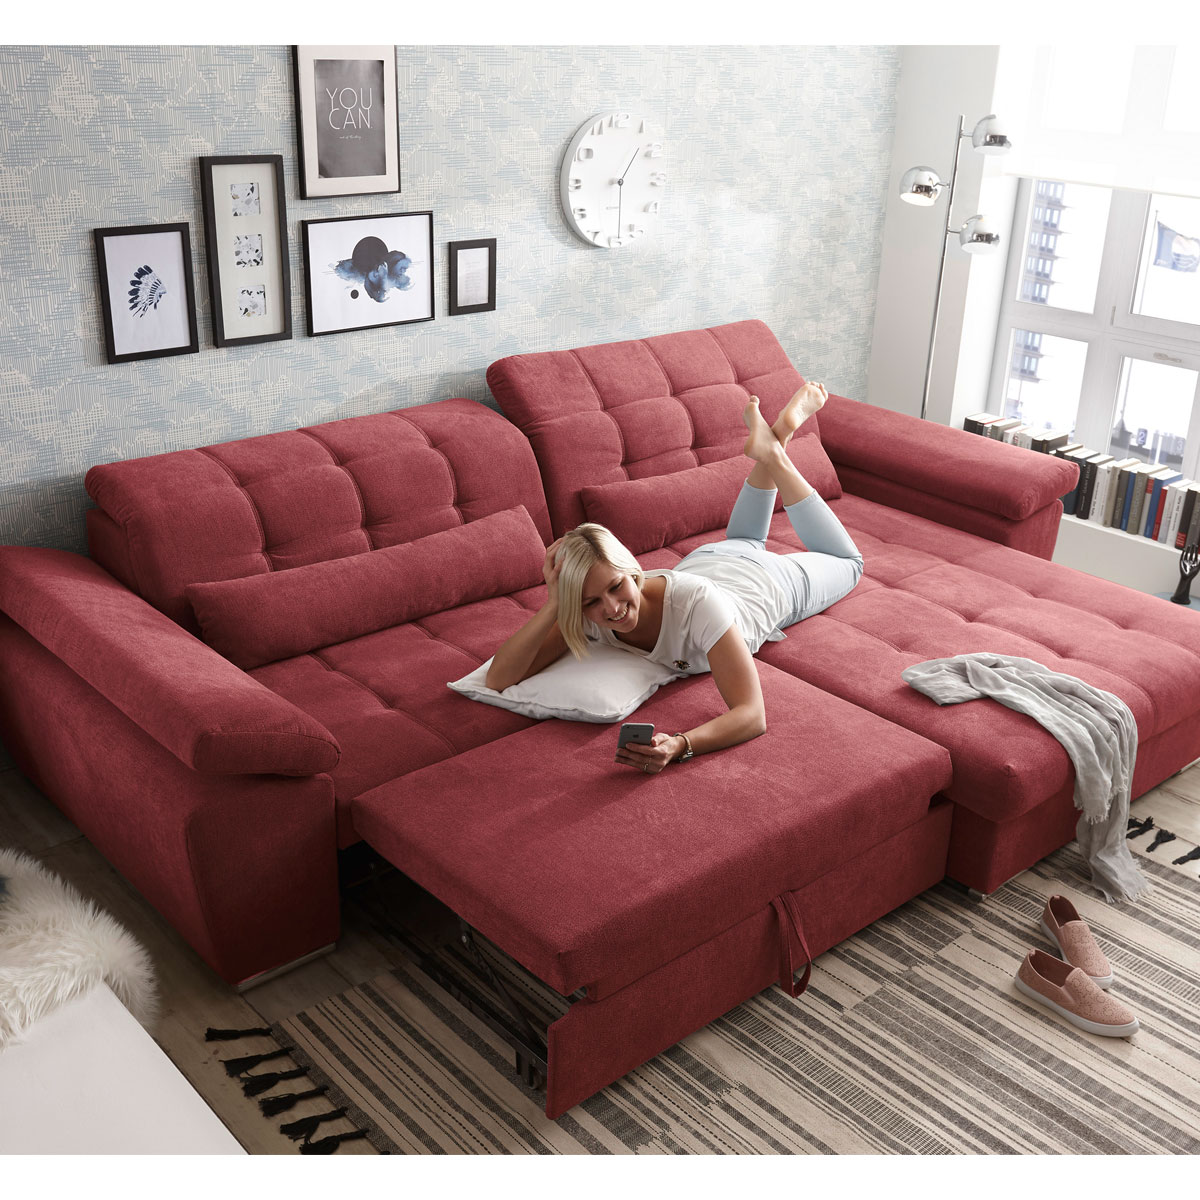 Full Size of Ecksofa Xxl Zuhause Innovation Sofa Berlin Küche Mit Kochinsel Hussen Schilling Schlafzimmer Set Boxspringbett Großes Bett Online Kaufen 3 Sitzer Grau Wohnzimmer Großes Sofa Mit Bettfunktion